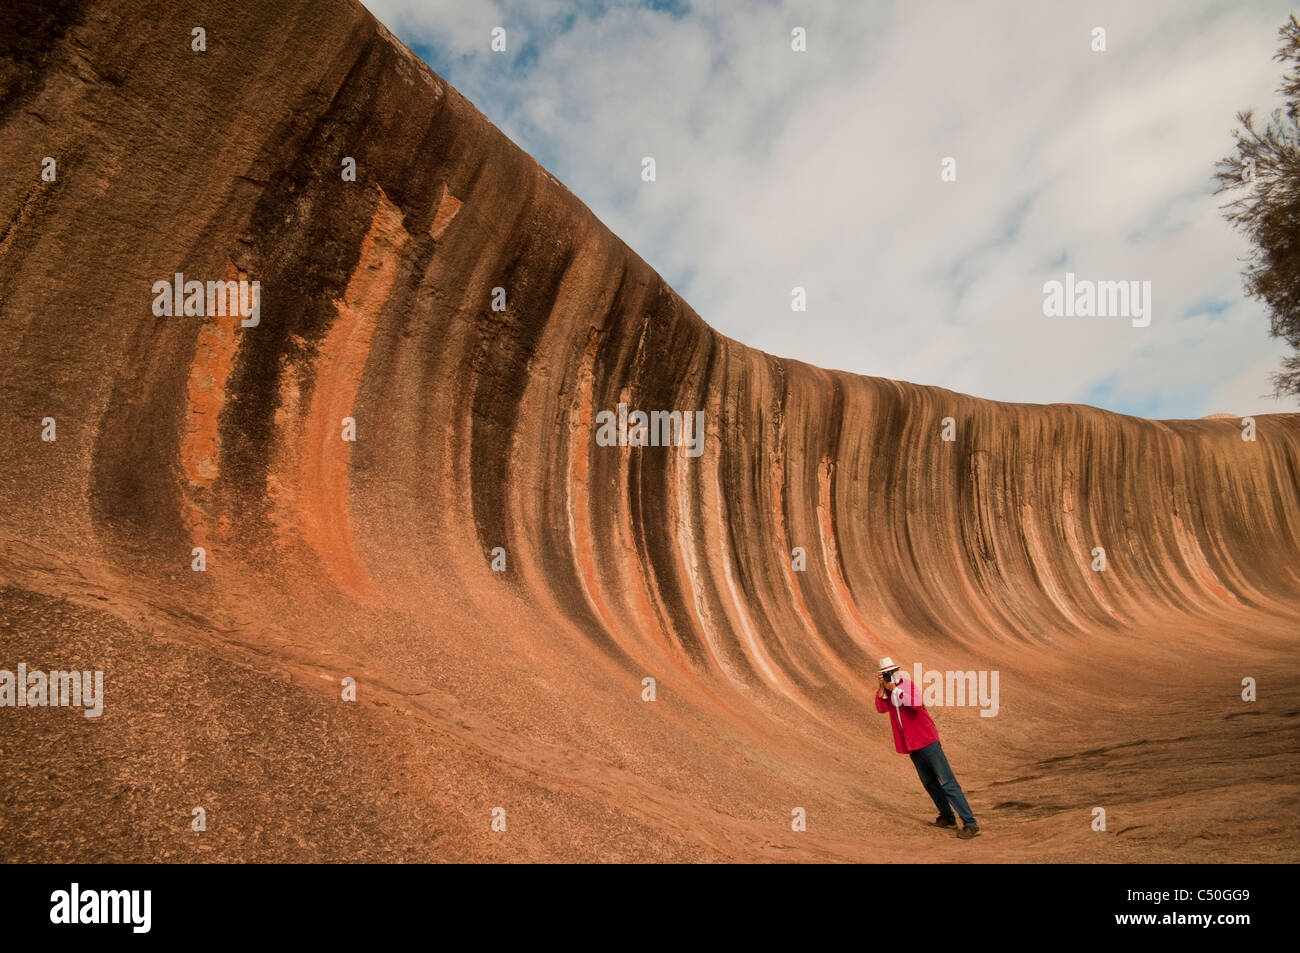 Photographing Wave Rock a natural geological formation near Hyden in Westen Australia - Stock Image